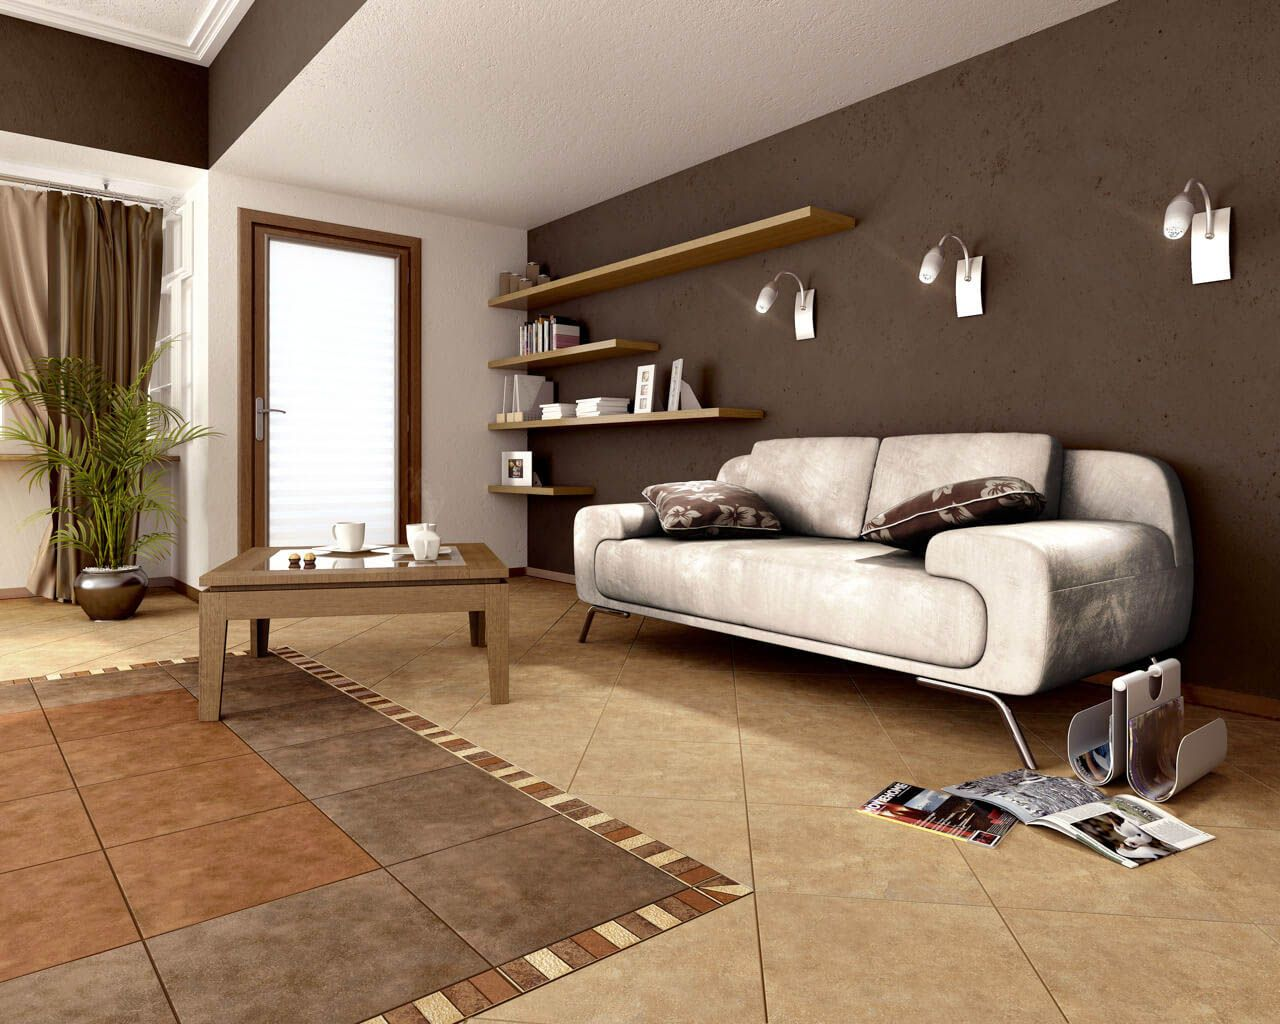 In the rufus collection there are three colour schemes of floor tiles in a 40x40 cm size beige brown and ochre there are also two decorative elements